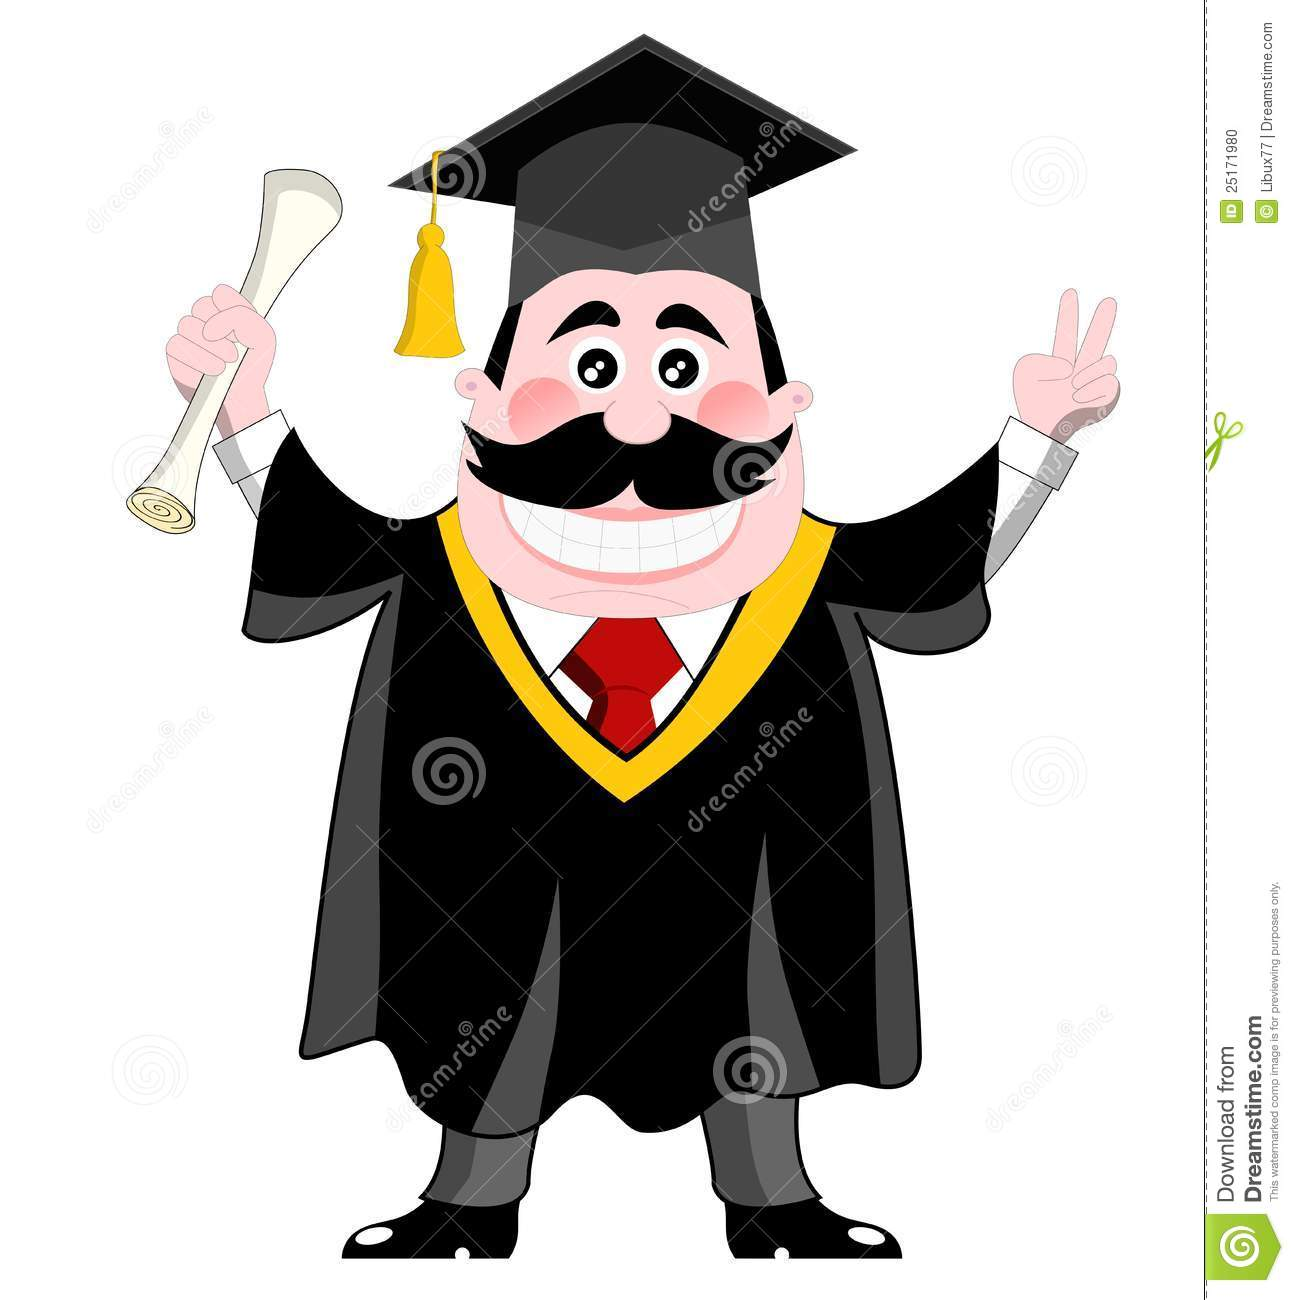 Graduation Gown Cartoon - 2018 images & pictures - Happy student ...